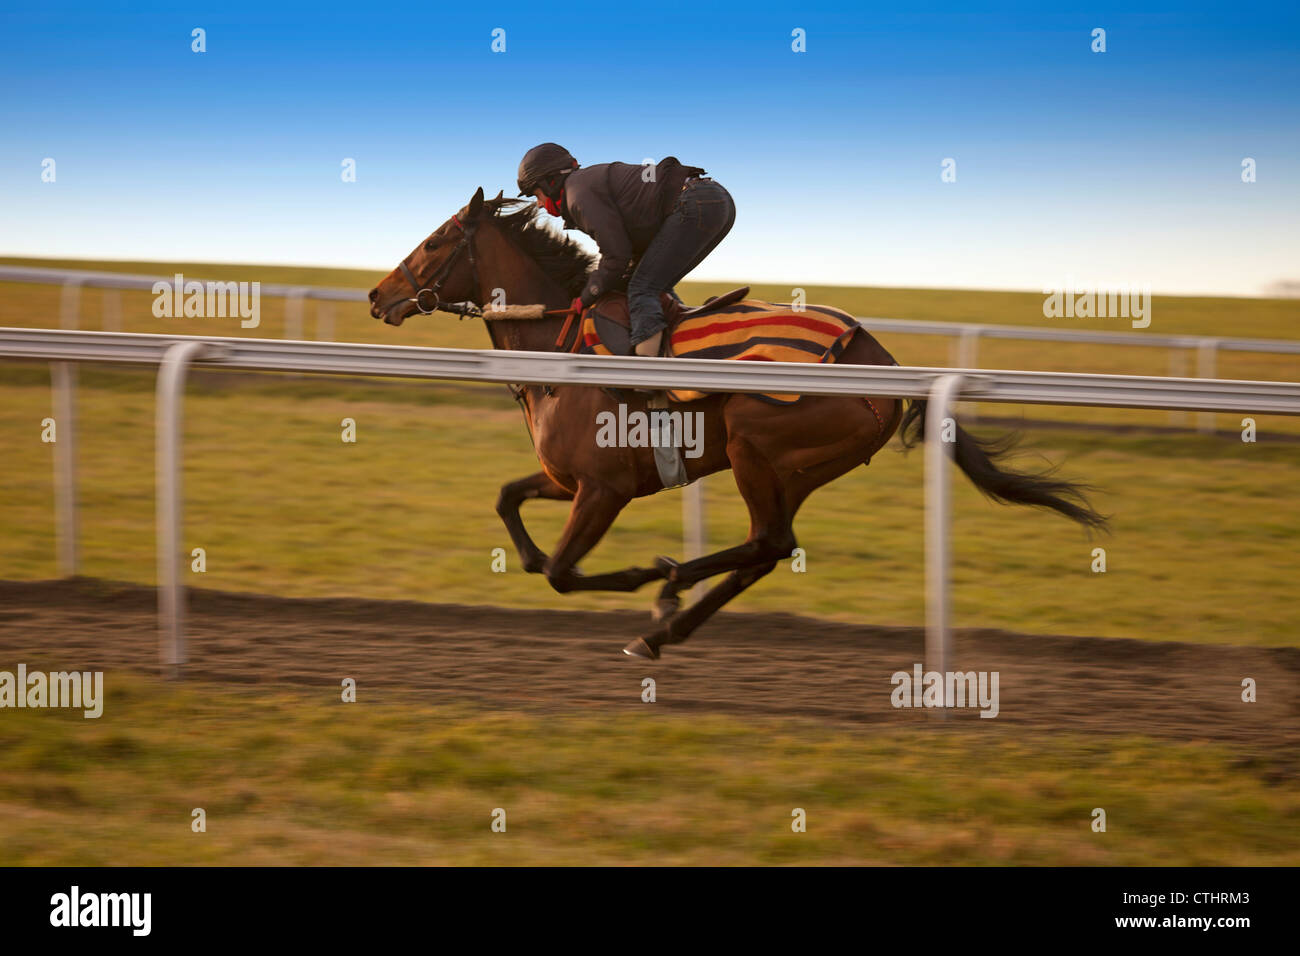 Racehorse at full gallop - Stock Image